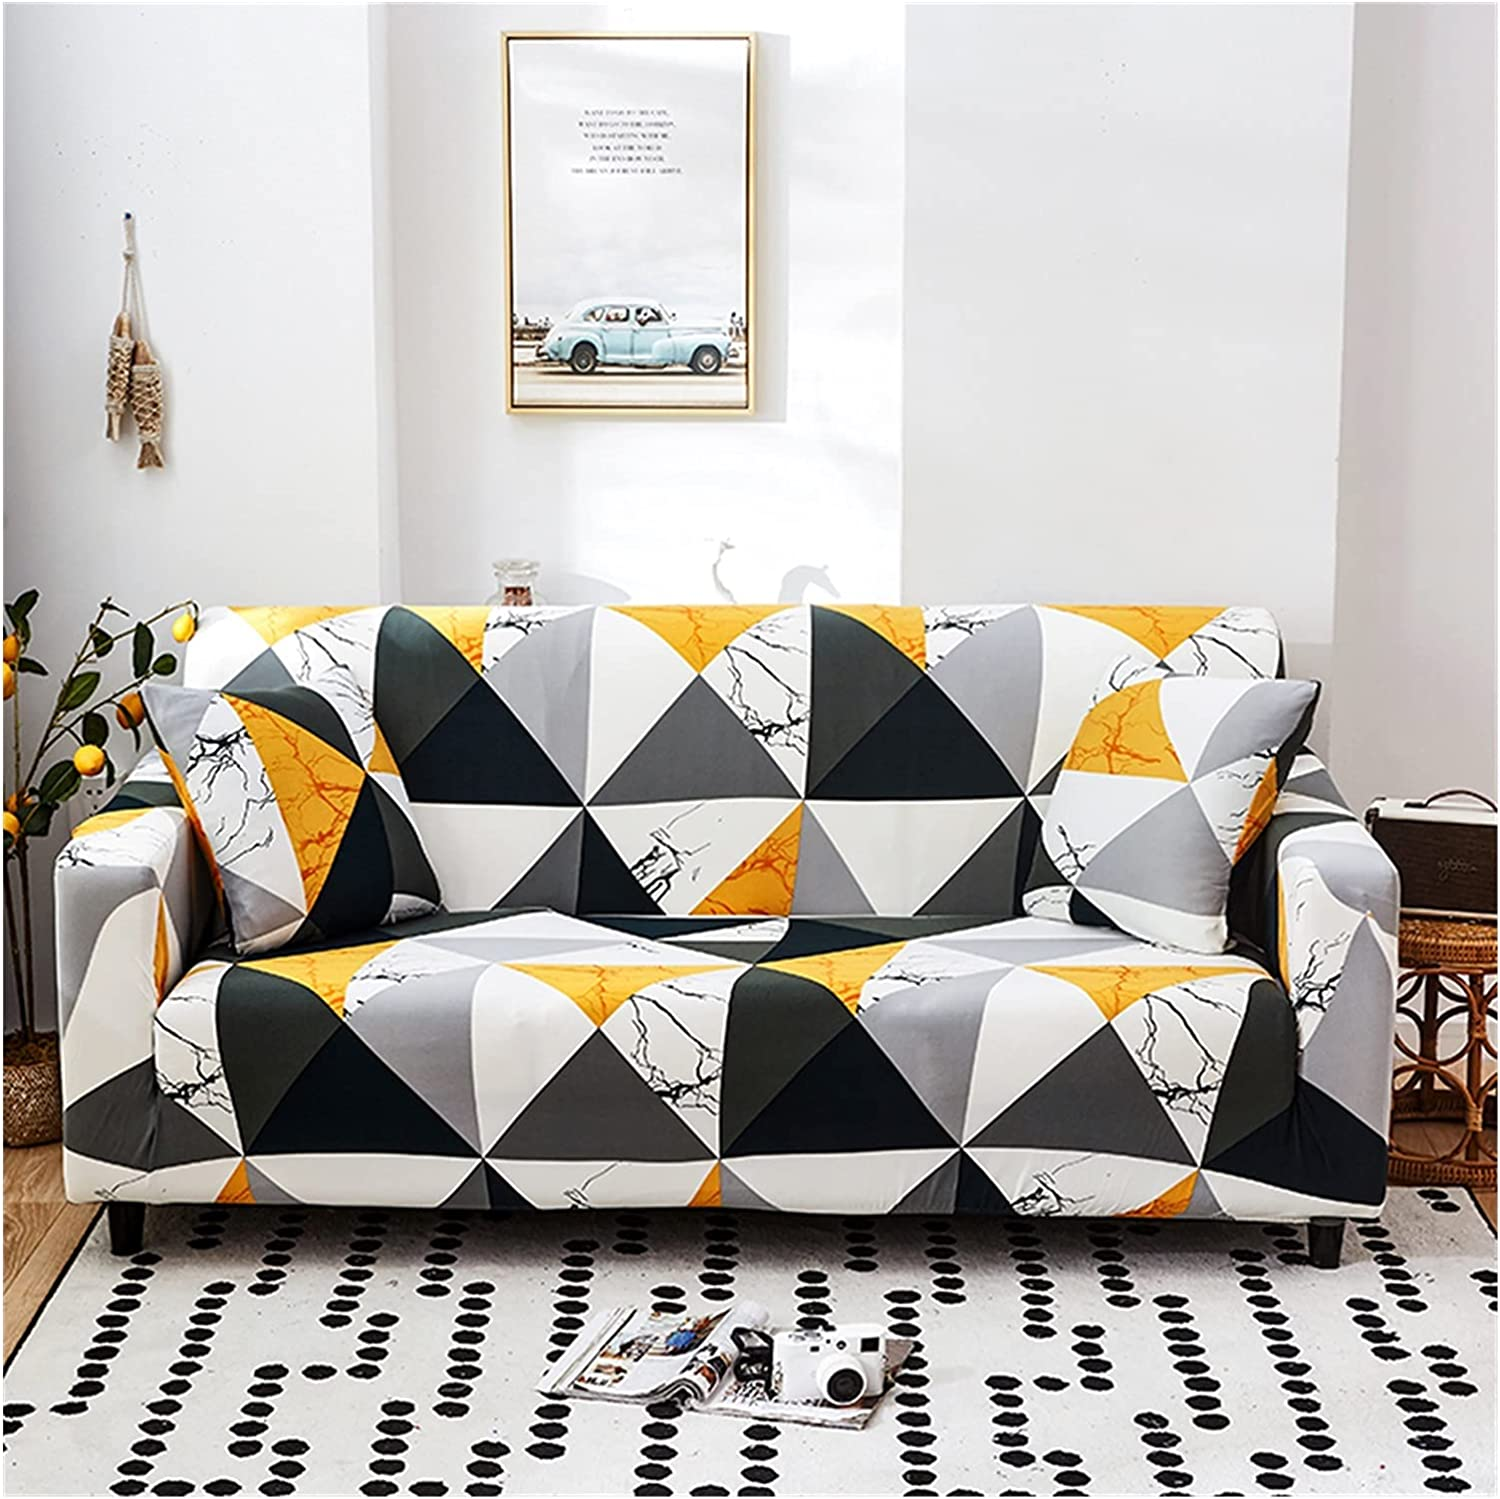 MGGZ Geometry free Spring new work Plaid Sofa Cover Stretch Slipcovers fo Covers